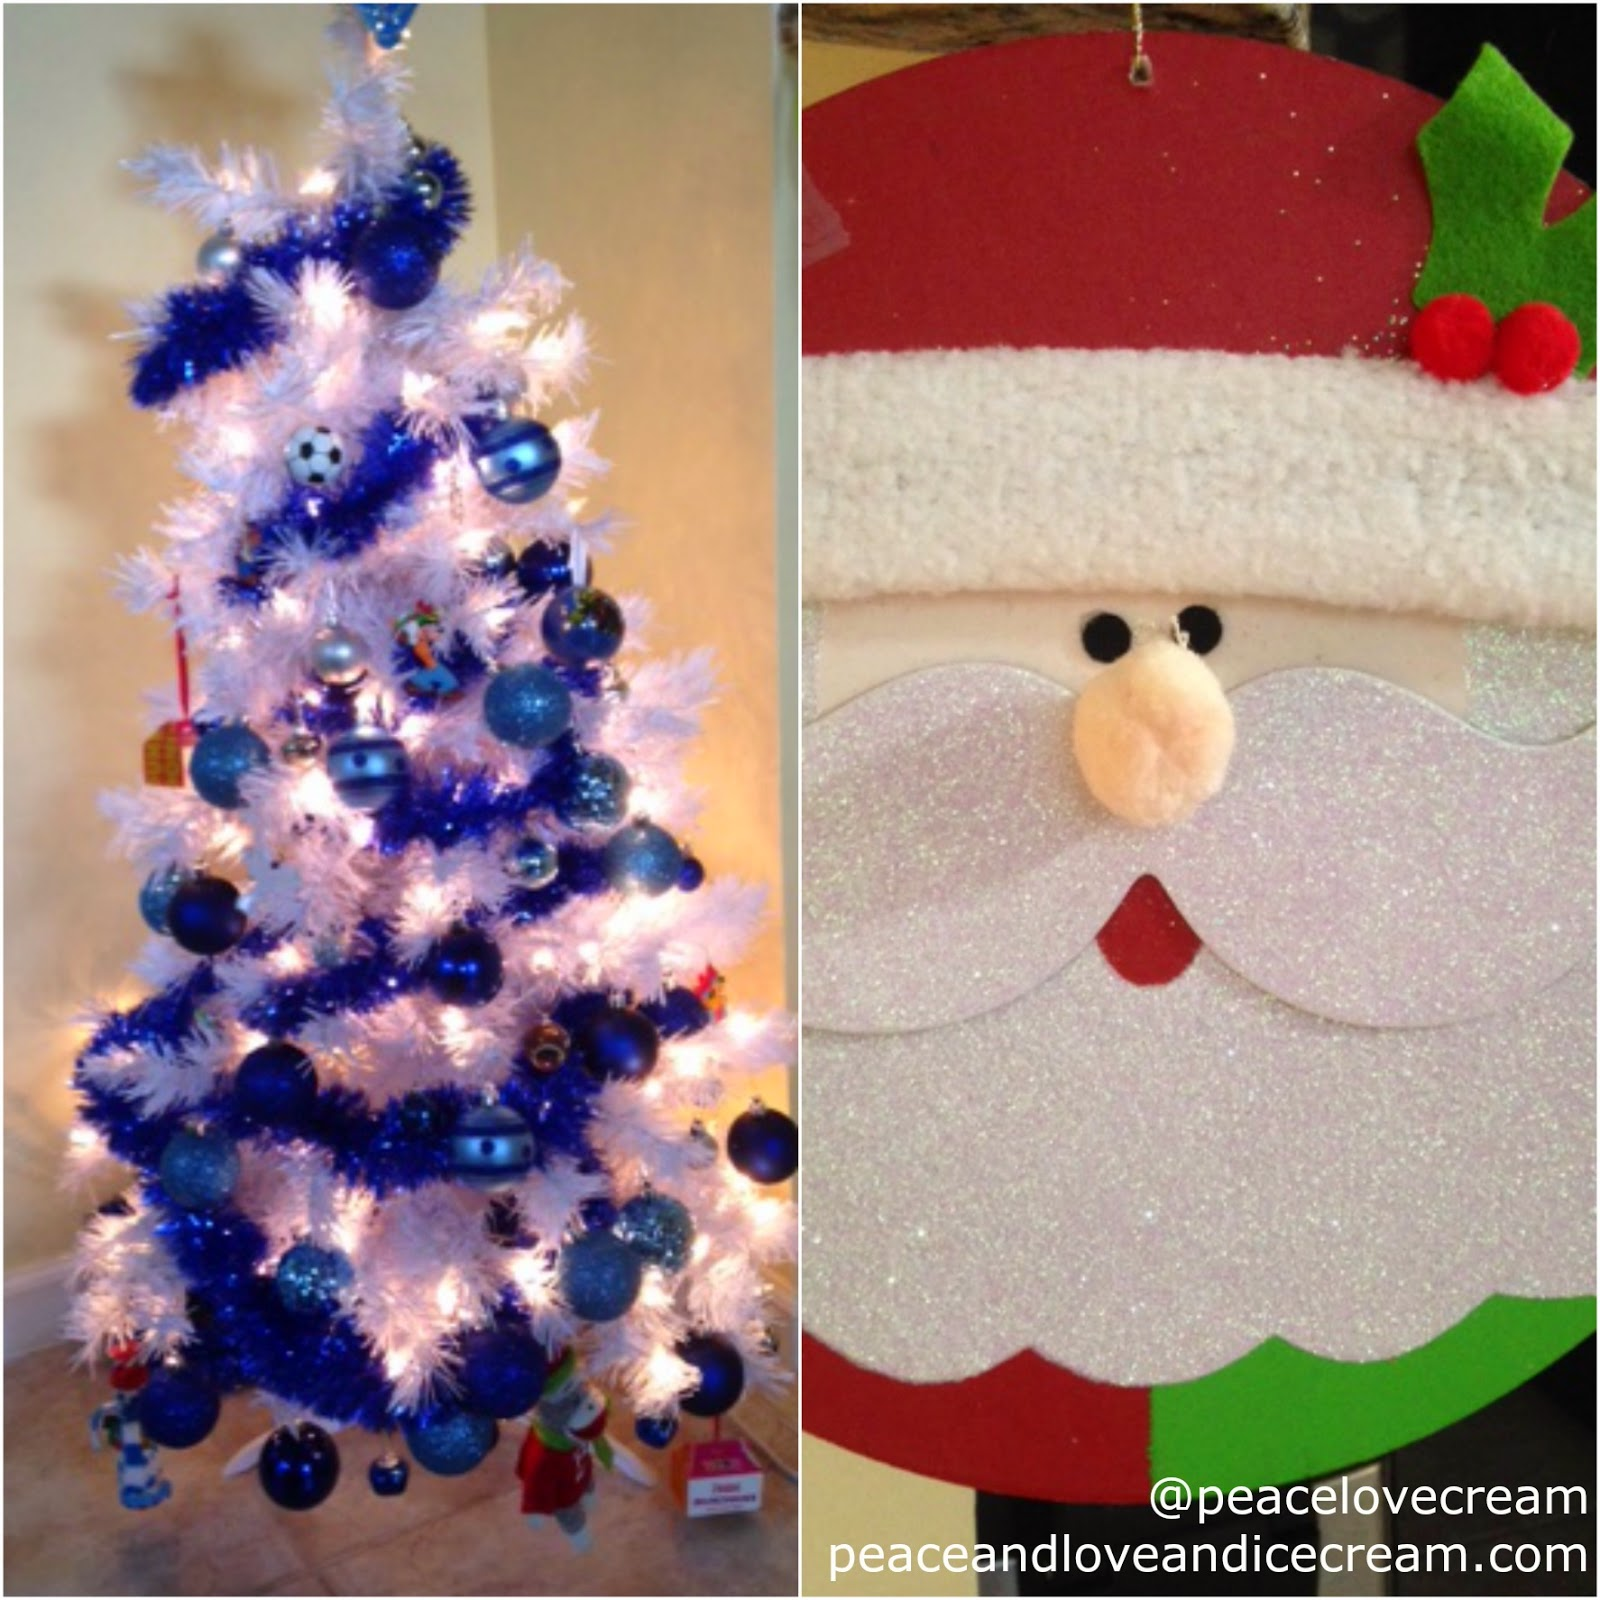 Hanukkah ornaments for a tree - This Year We Have A 4 Ft Hanukkah Bush That Looks A Lot Like A White Christmas Tree With Mostly Blue Ornaments We Do Have Personalized Stockings And